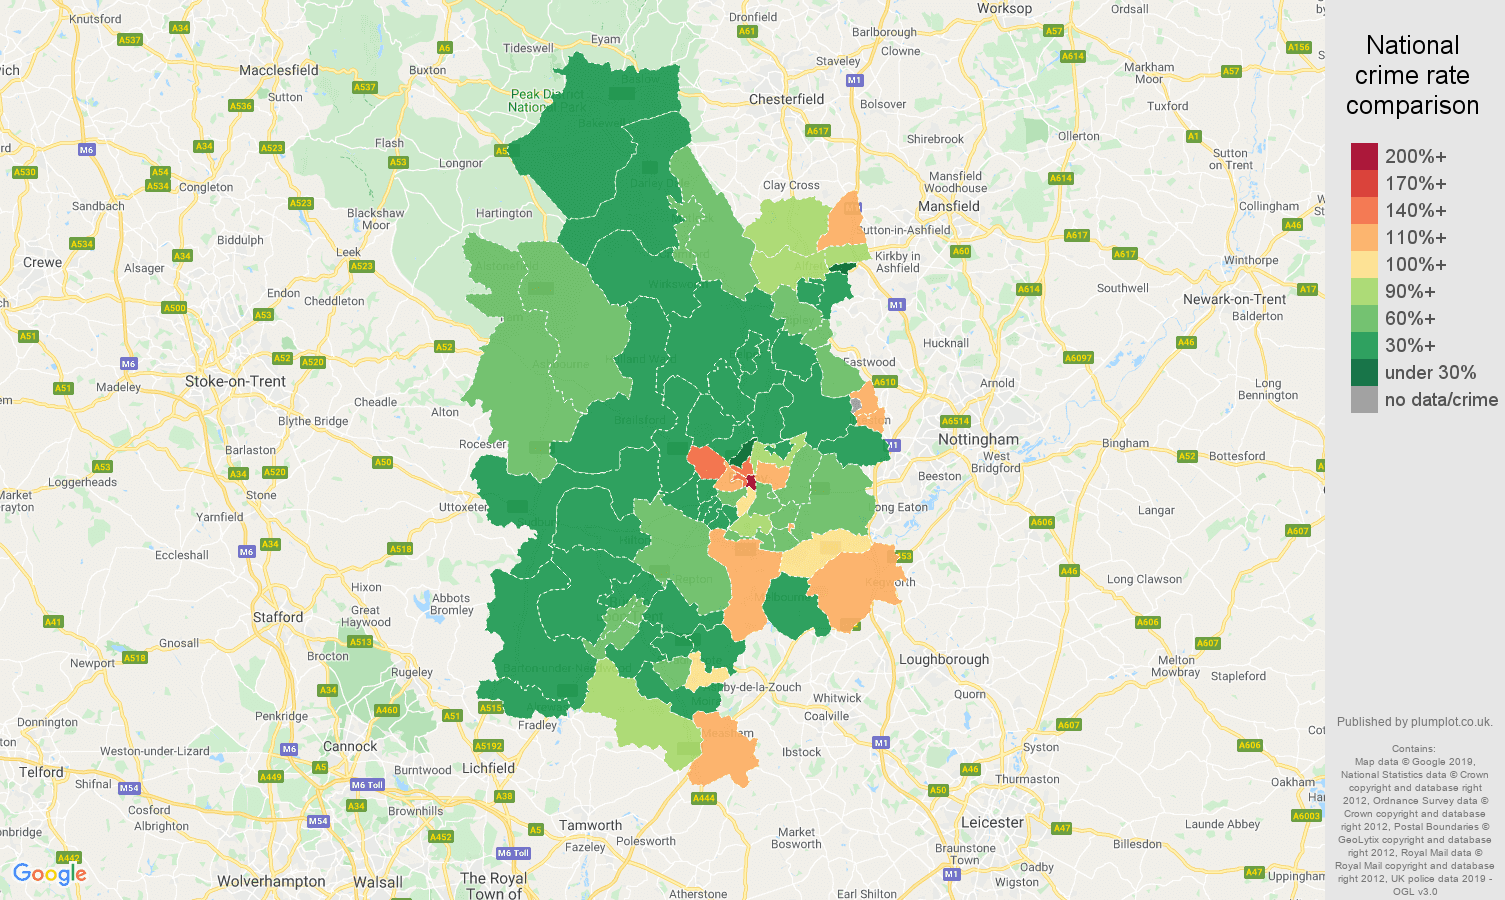 Derby other theft crime rate comparison map